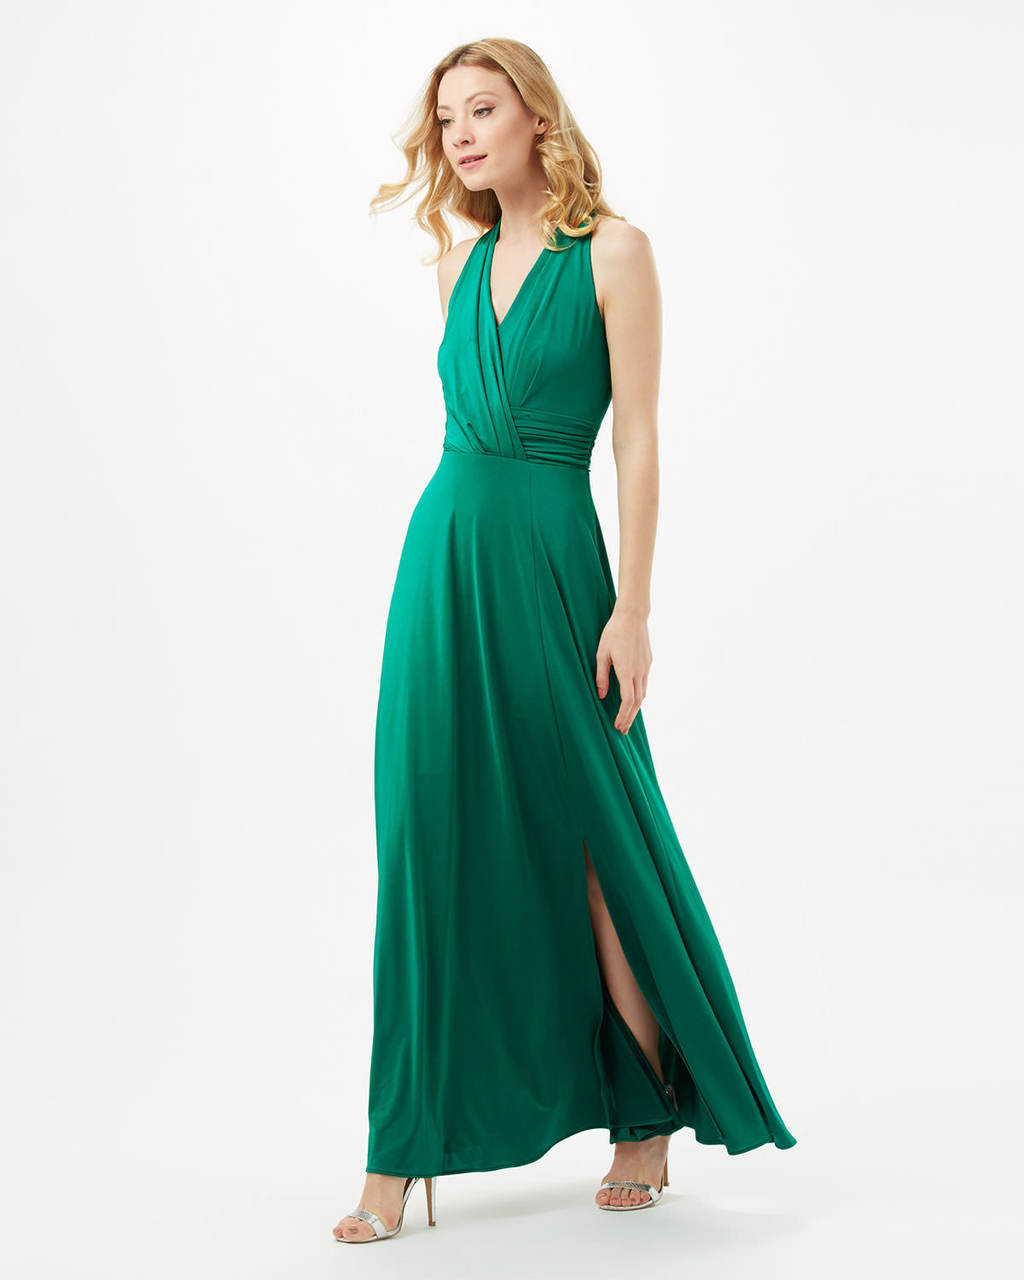 Astrid Maxi Dress - neckline: v-neck; fit: fitted at waist; pattern: plain; sleeve style: sleeveless; style: maxi dress; length: ankle length; predominant colour: emerald green; occasions: evening, occasion, holiday; fibres: polyester/polyamide - 100%; hip detail: slits at hip; sleeve length: sleeveless; pattern type: fabric; texture group: jersey - stretchy/drapey; season: s/s 2016